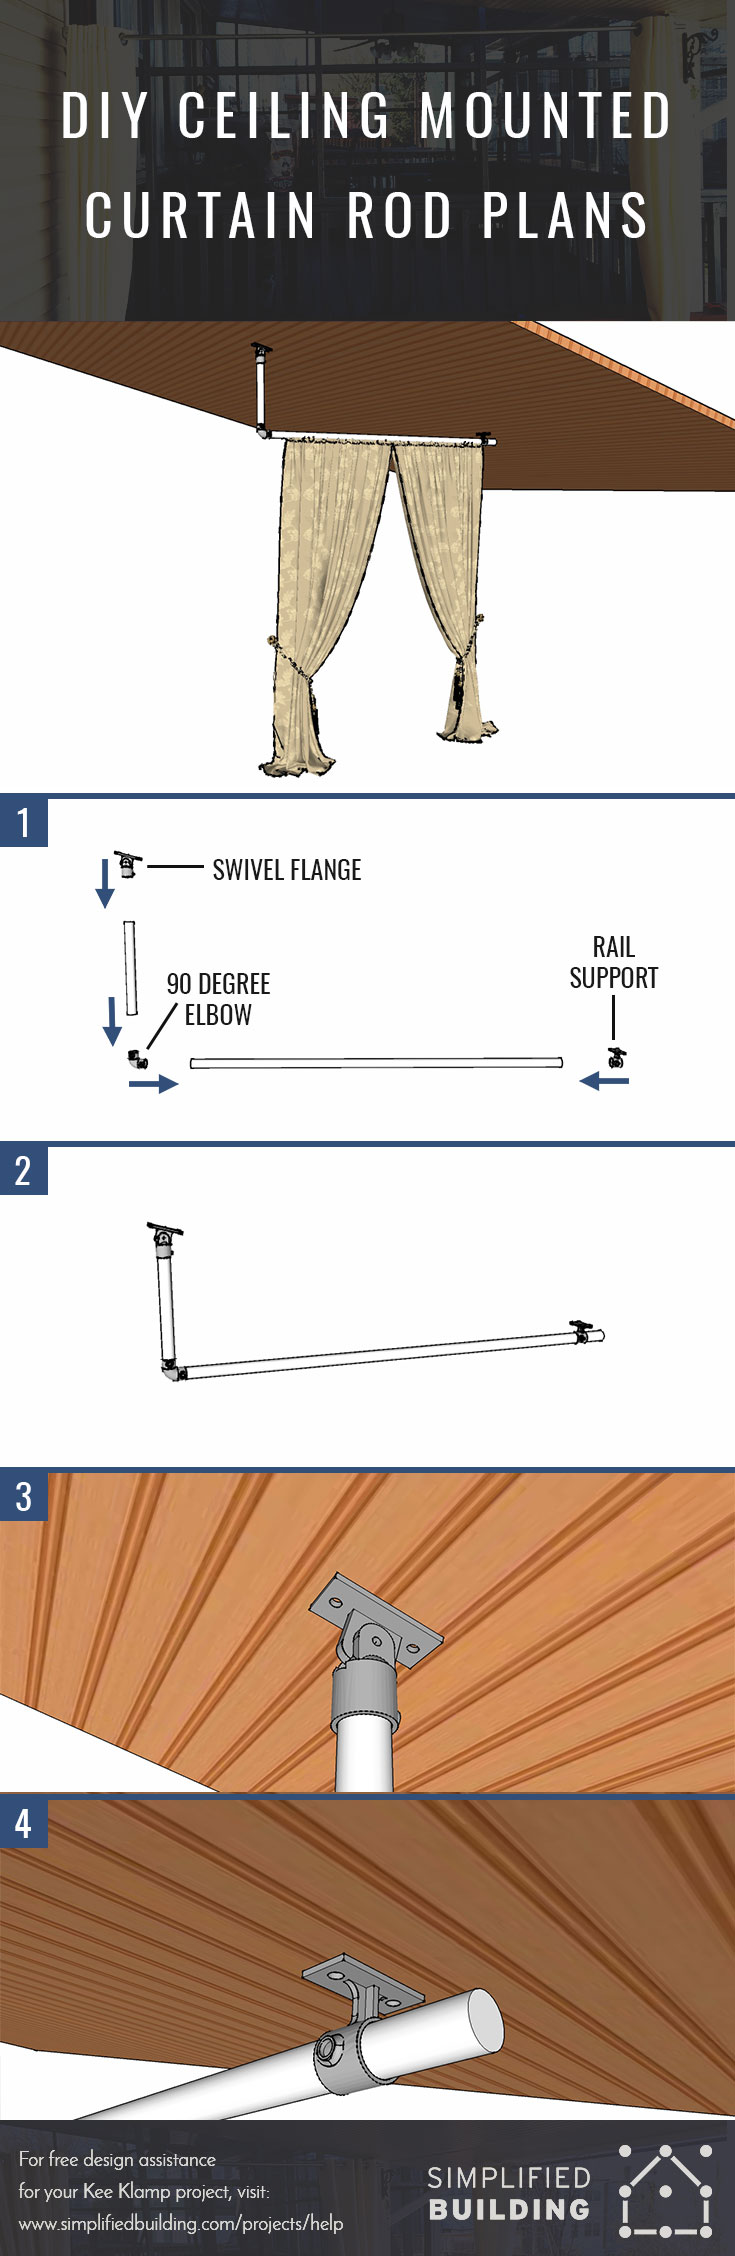 DIY Ceiling Mounted Curtain Rod Plans